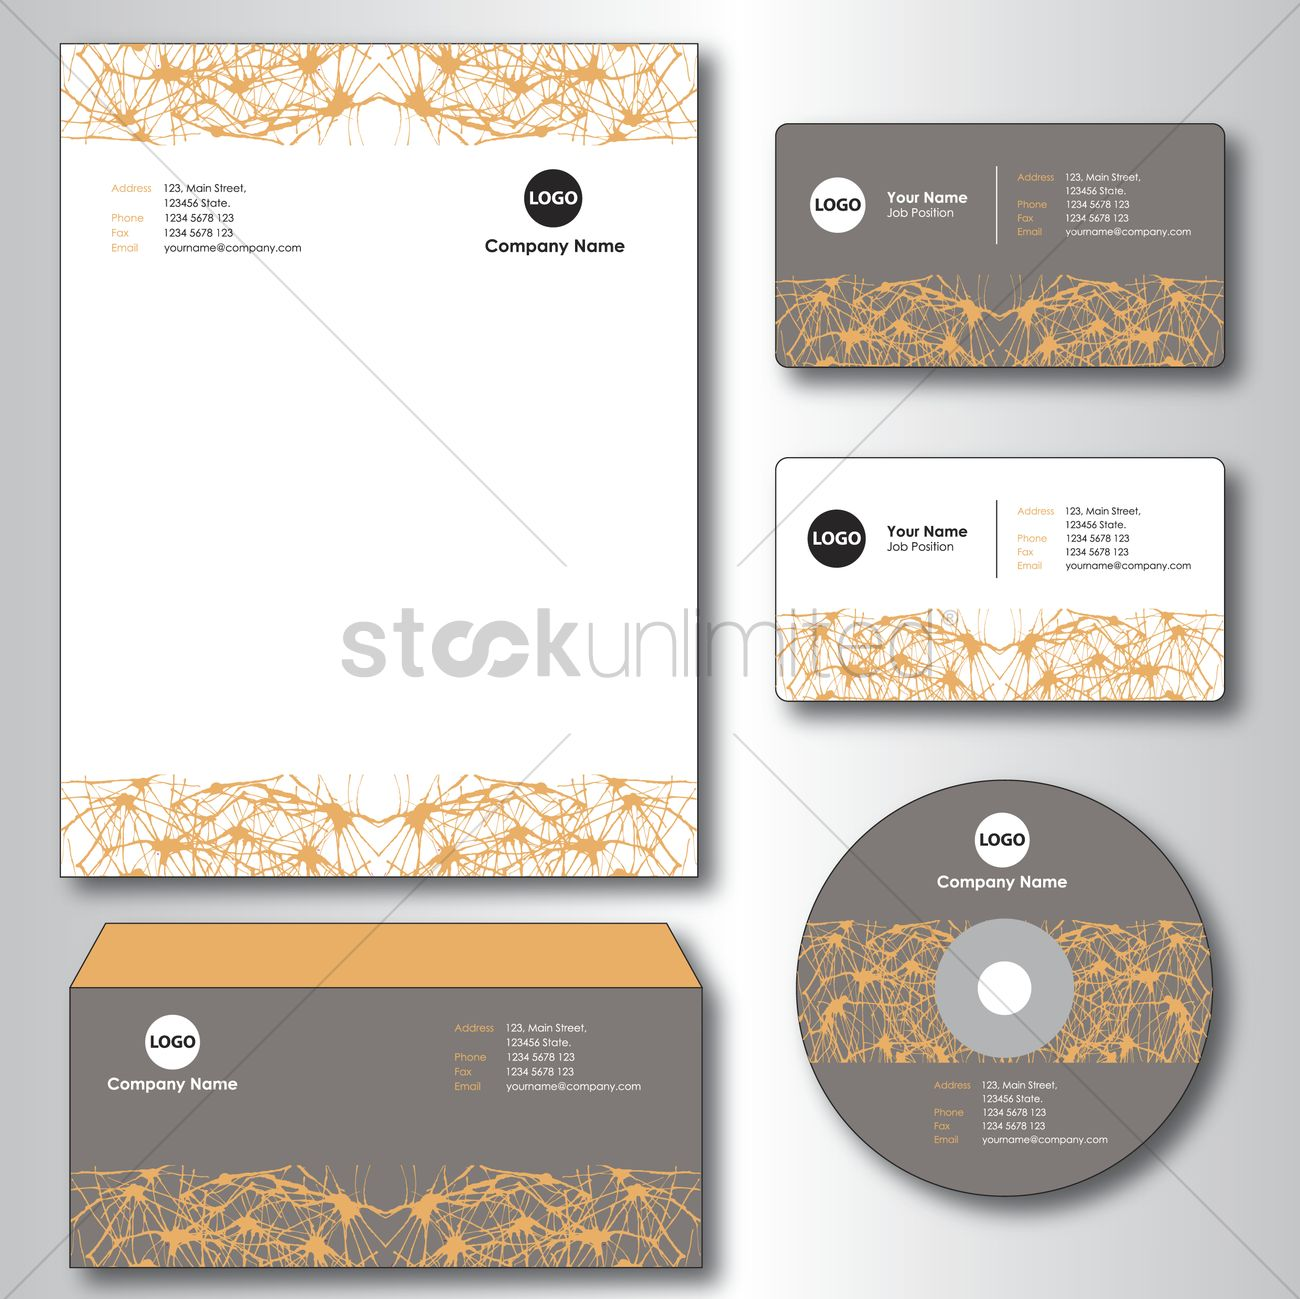 Company paper, envelope, business card and cd Vector Image - 1235431 ...